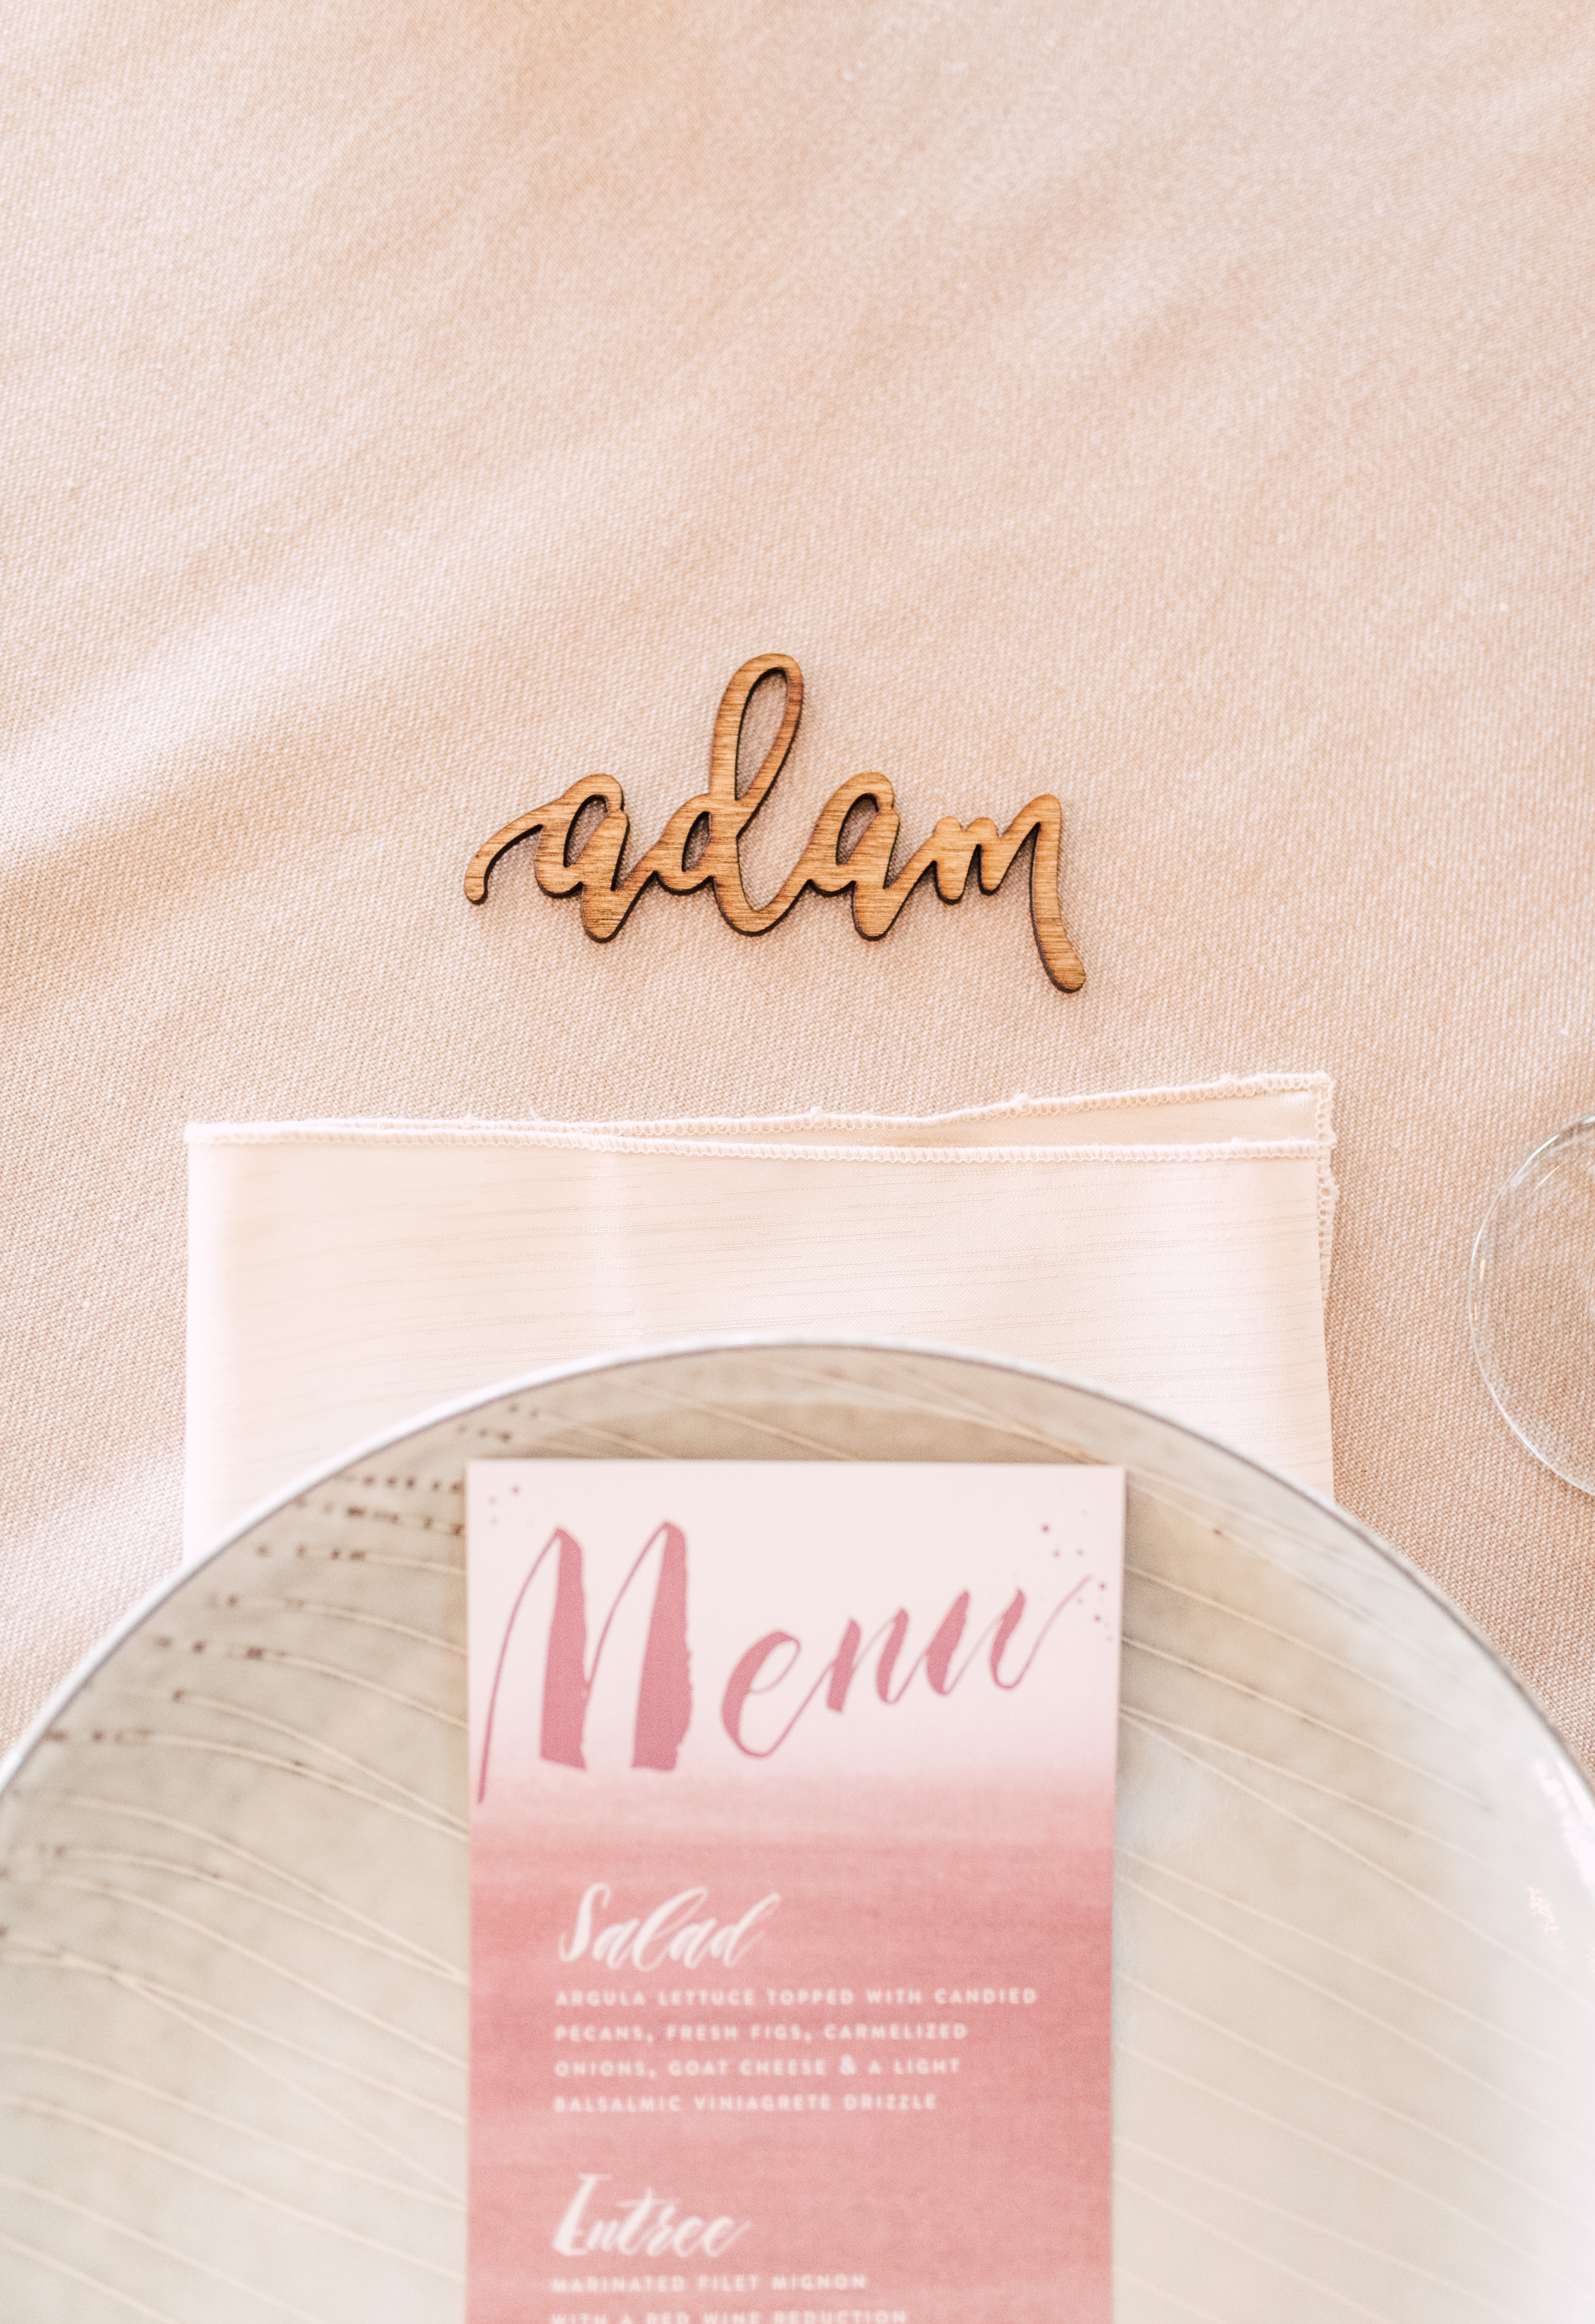 wood-carved place setting - photo by Victoria Isabel Photography http://ruffledblog.com/fall-wedding-inspiration-from-the-big-fake-wedding